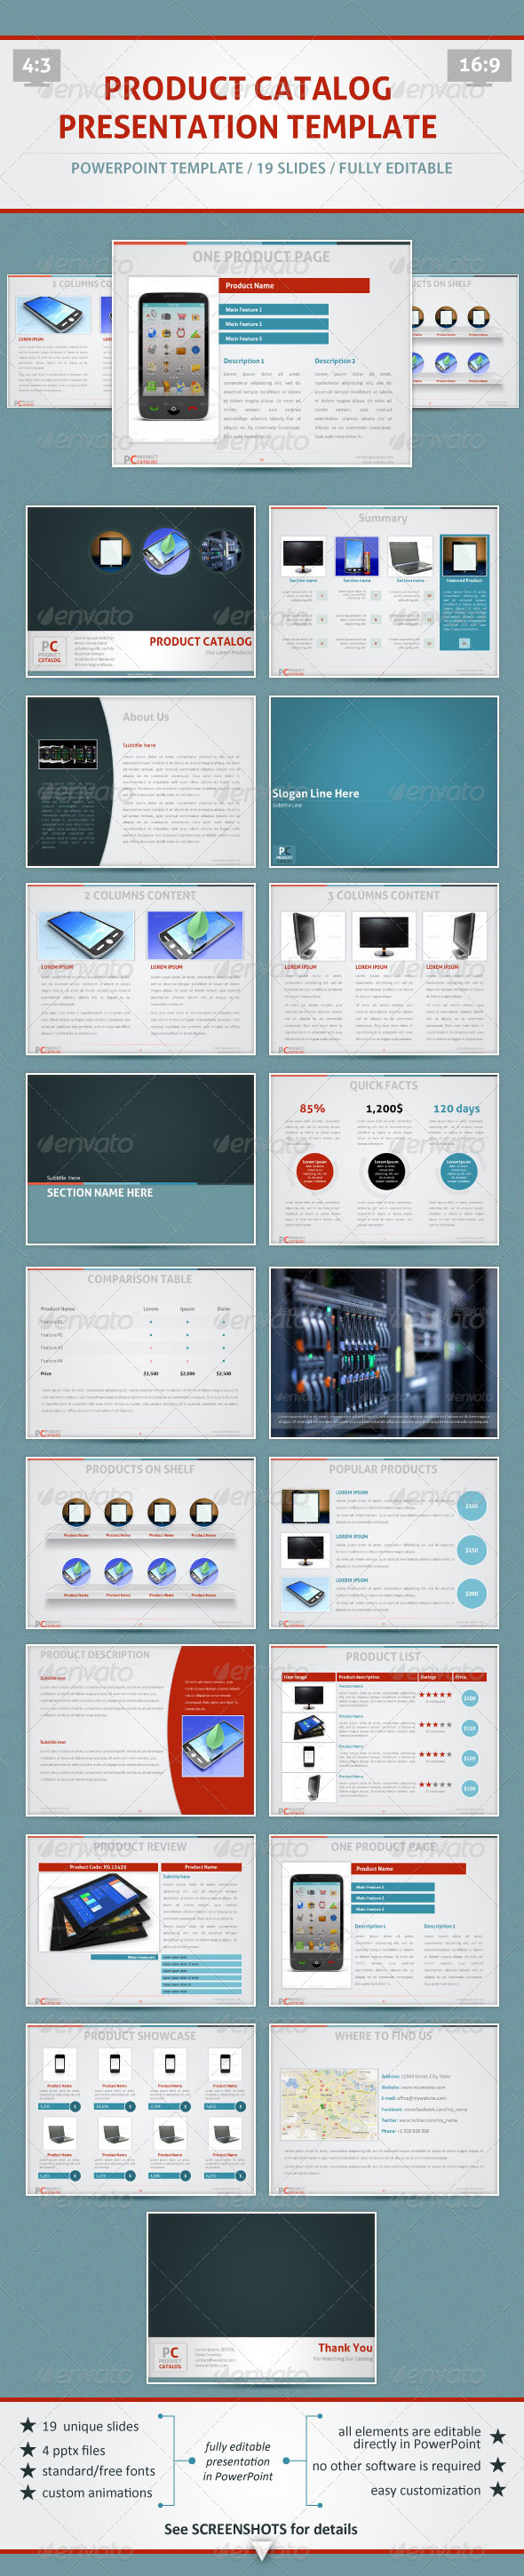 product catalog - powerpoint template | product catalog, template, Presentation templates